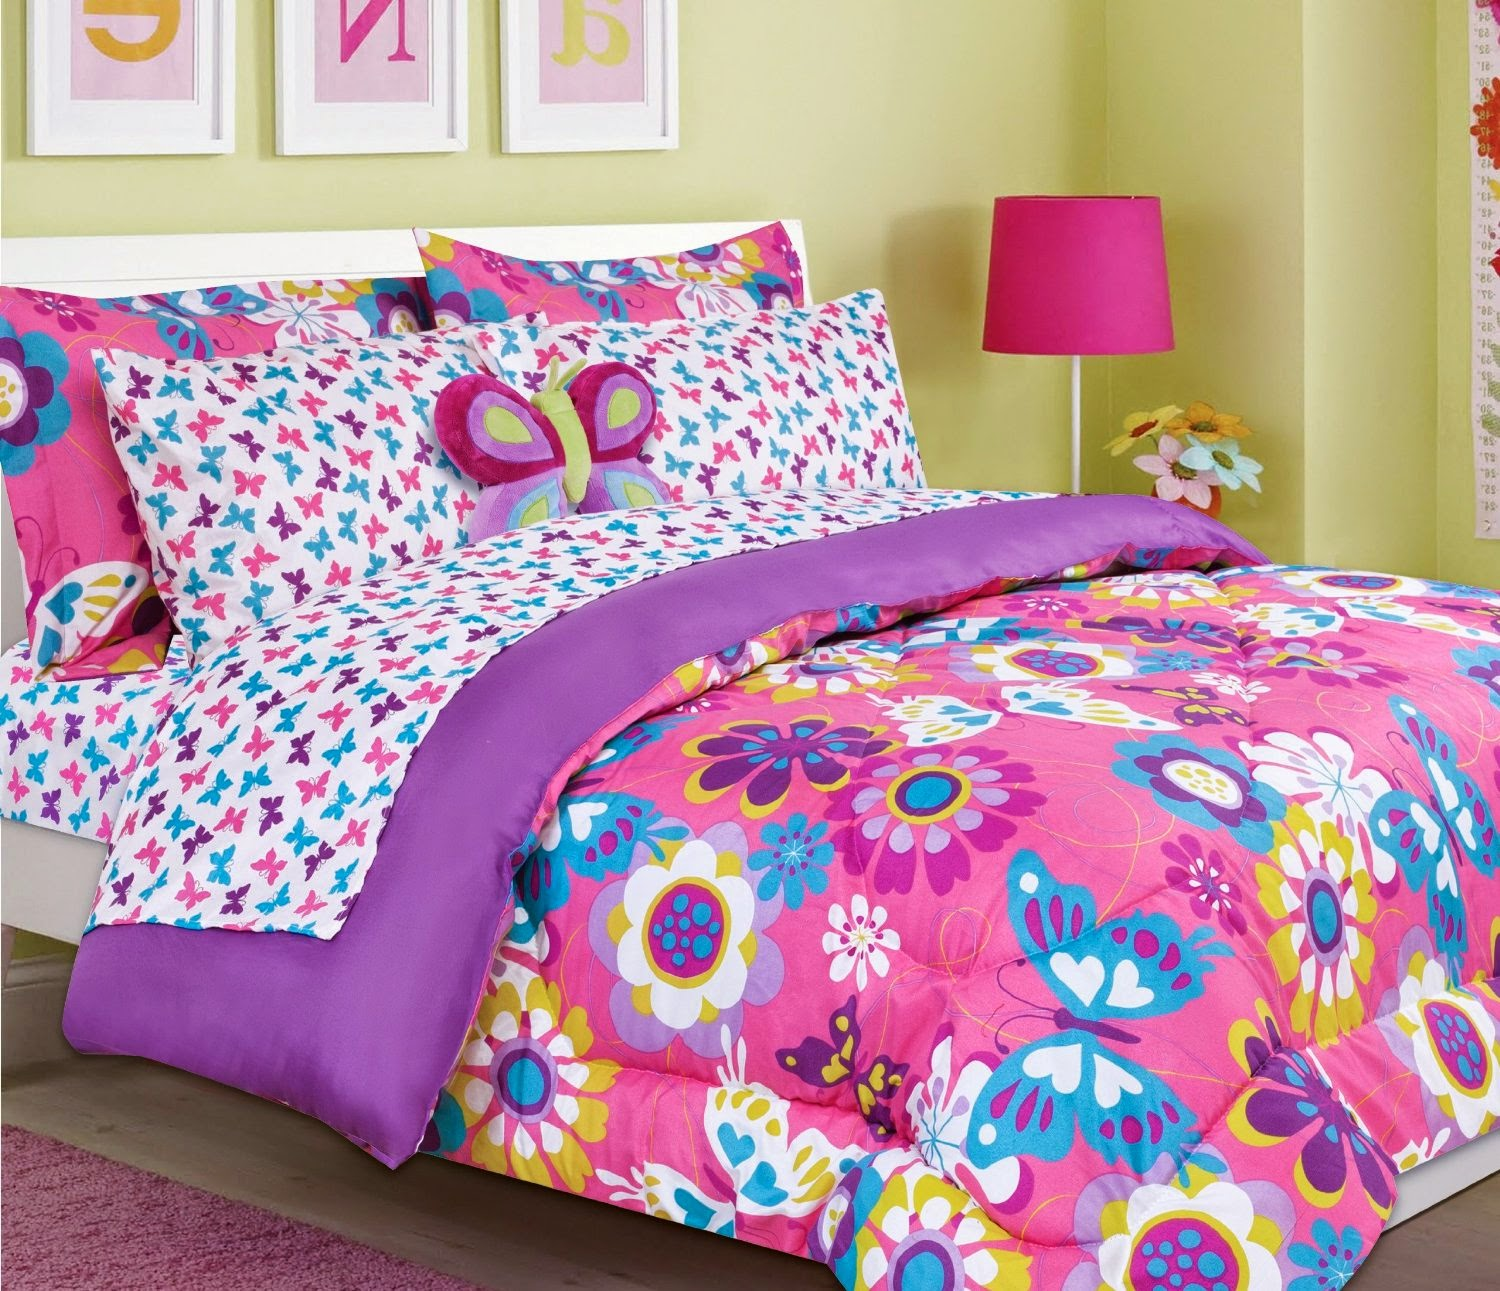 Bedroom decor ideas and designs top butterfly themed for Butterfly bedroom ideas